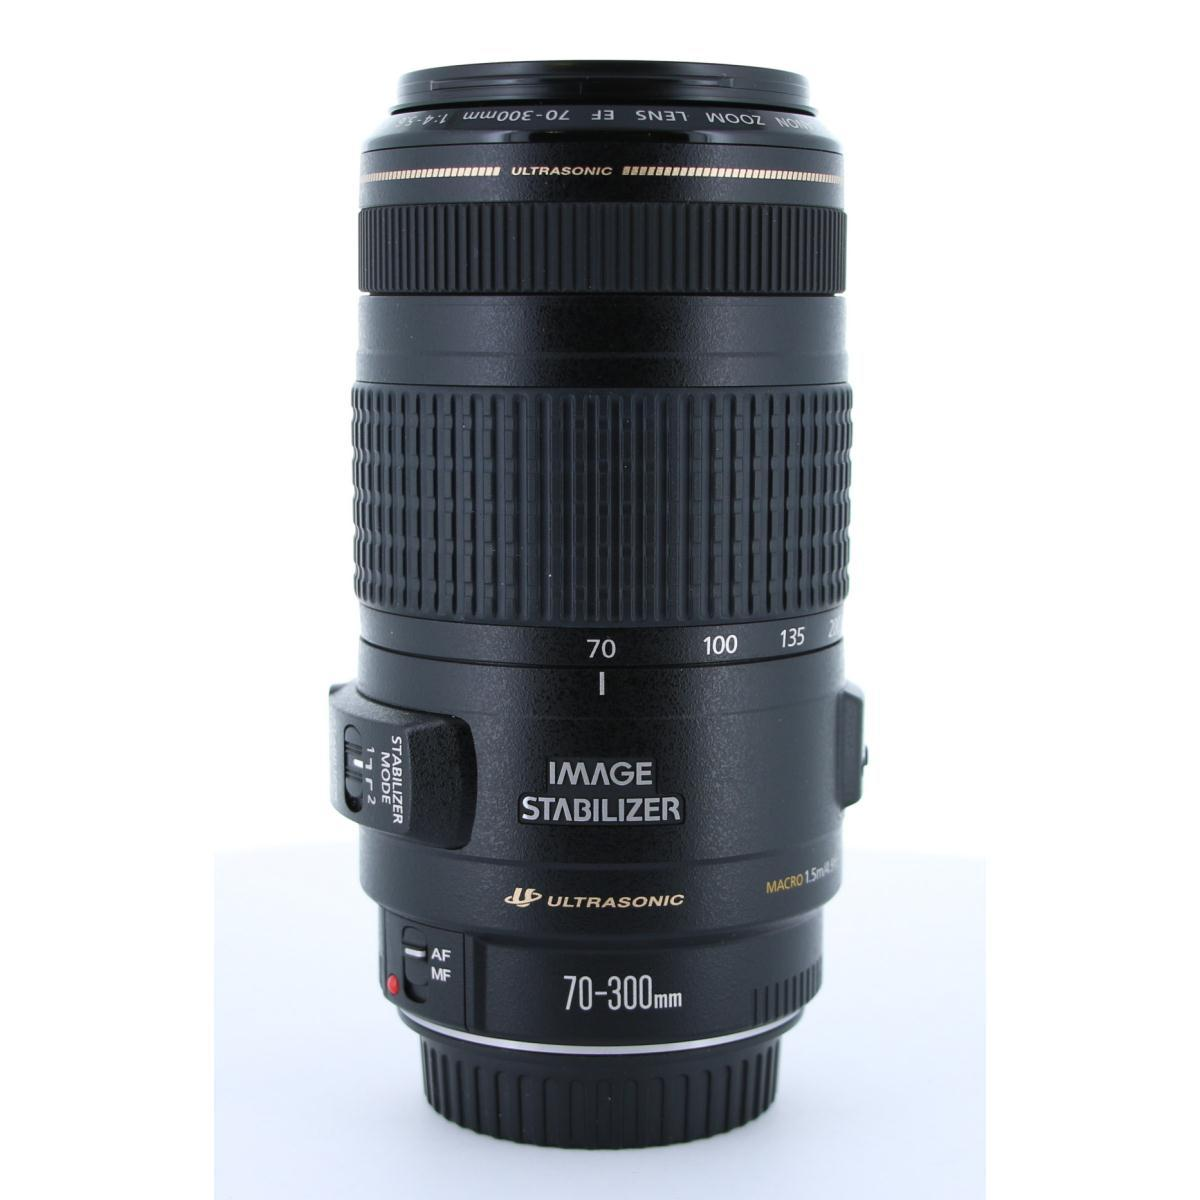 CANON EF70-300mm F4-5.6IS USM【中古】